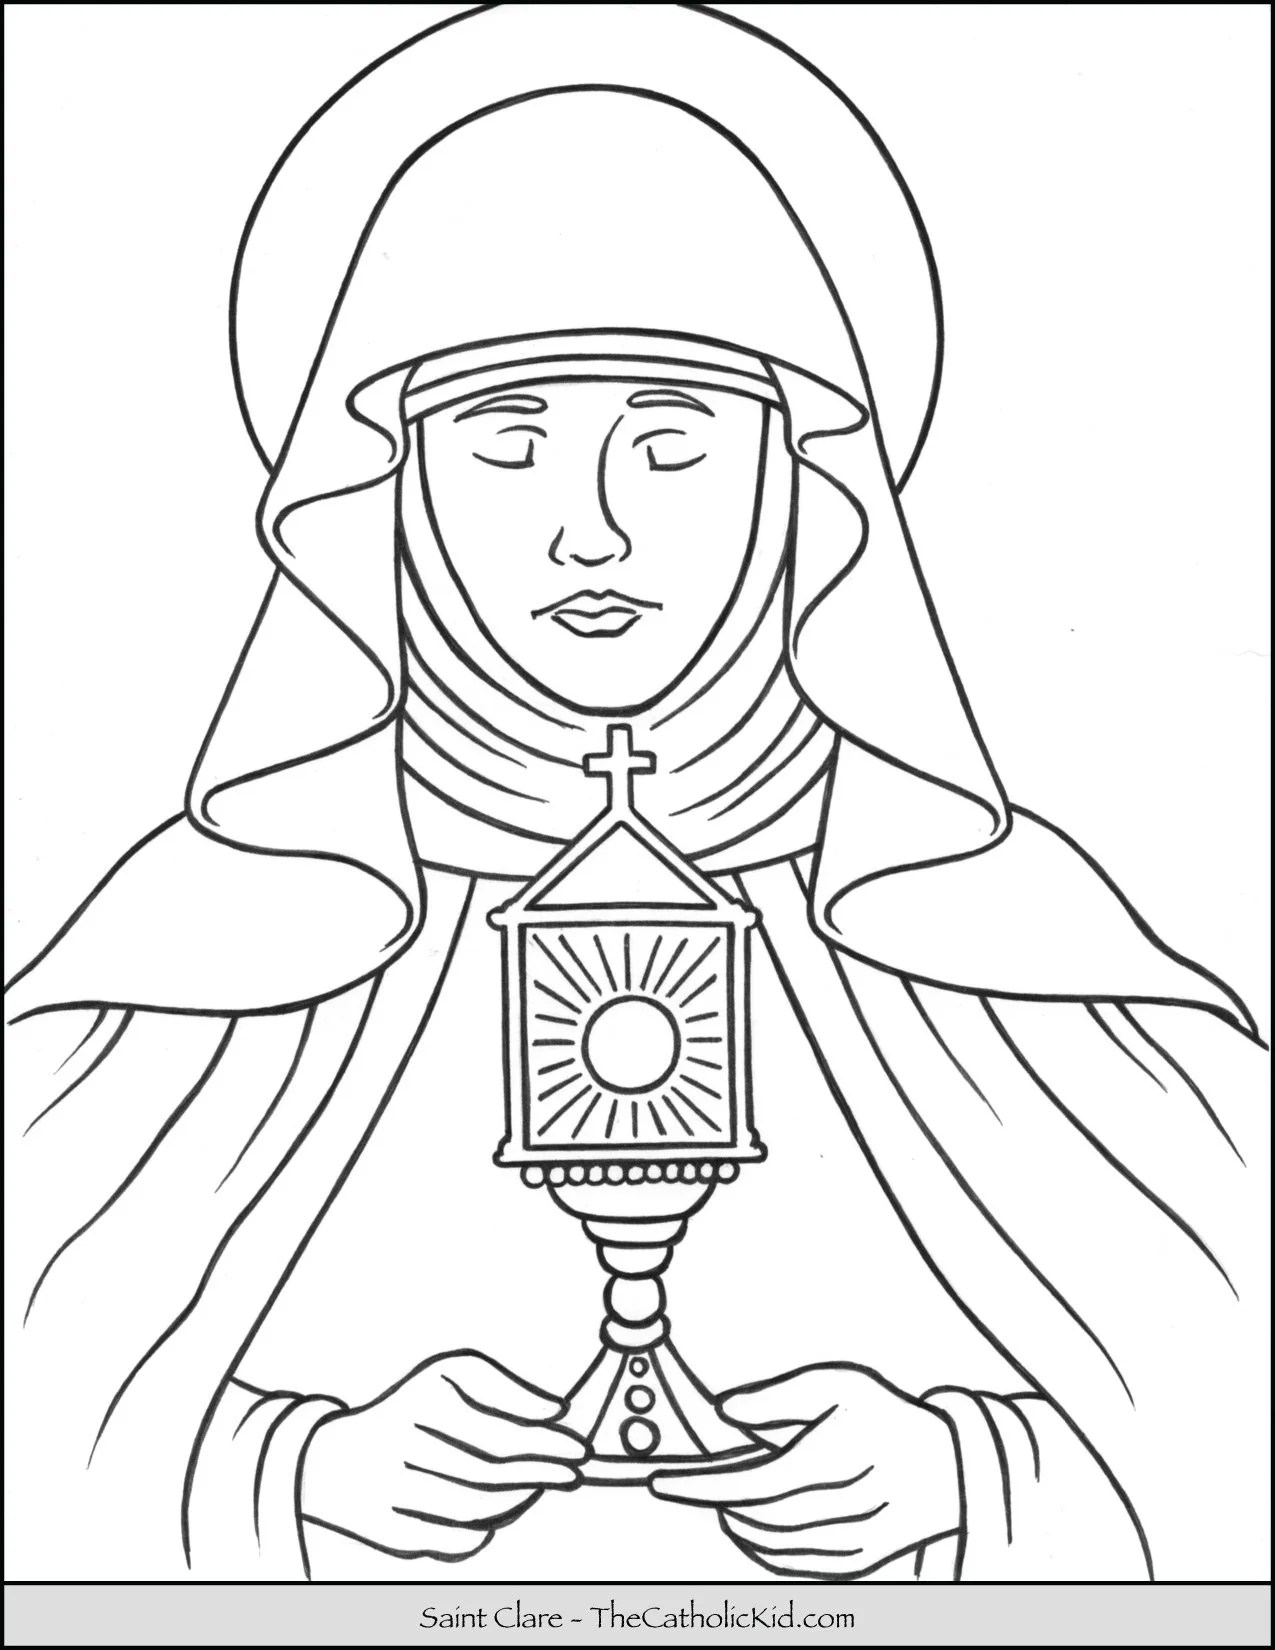 Saint Clare Coloring Page